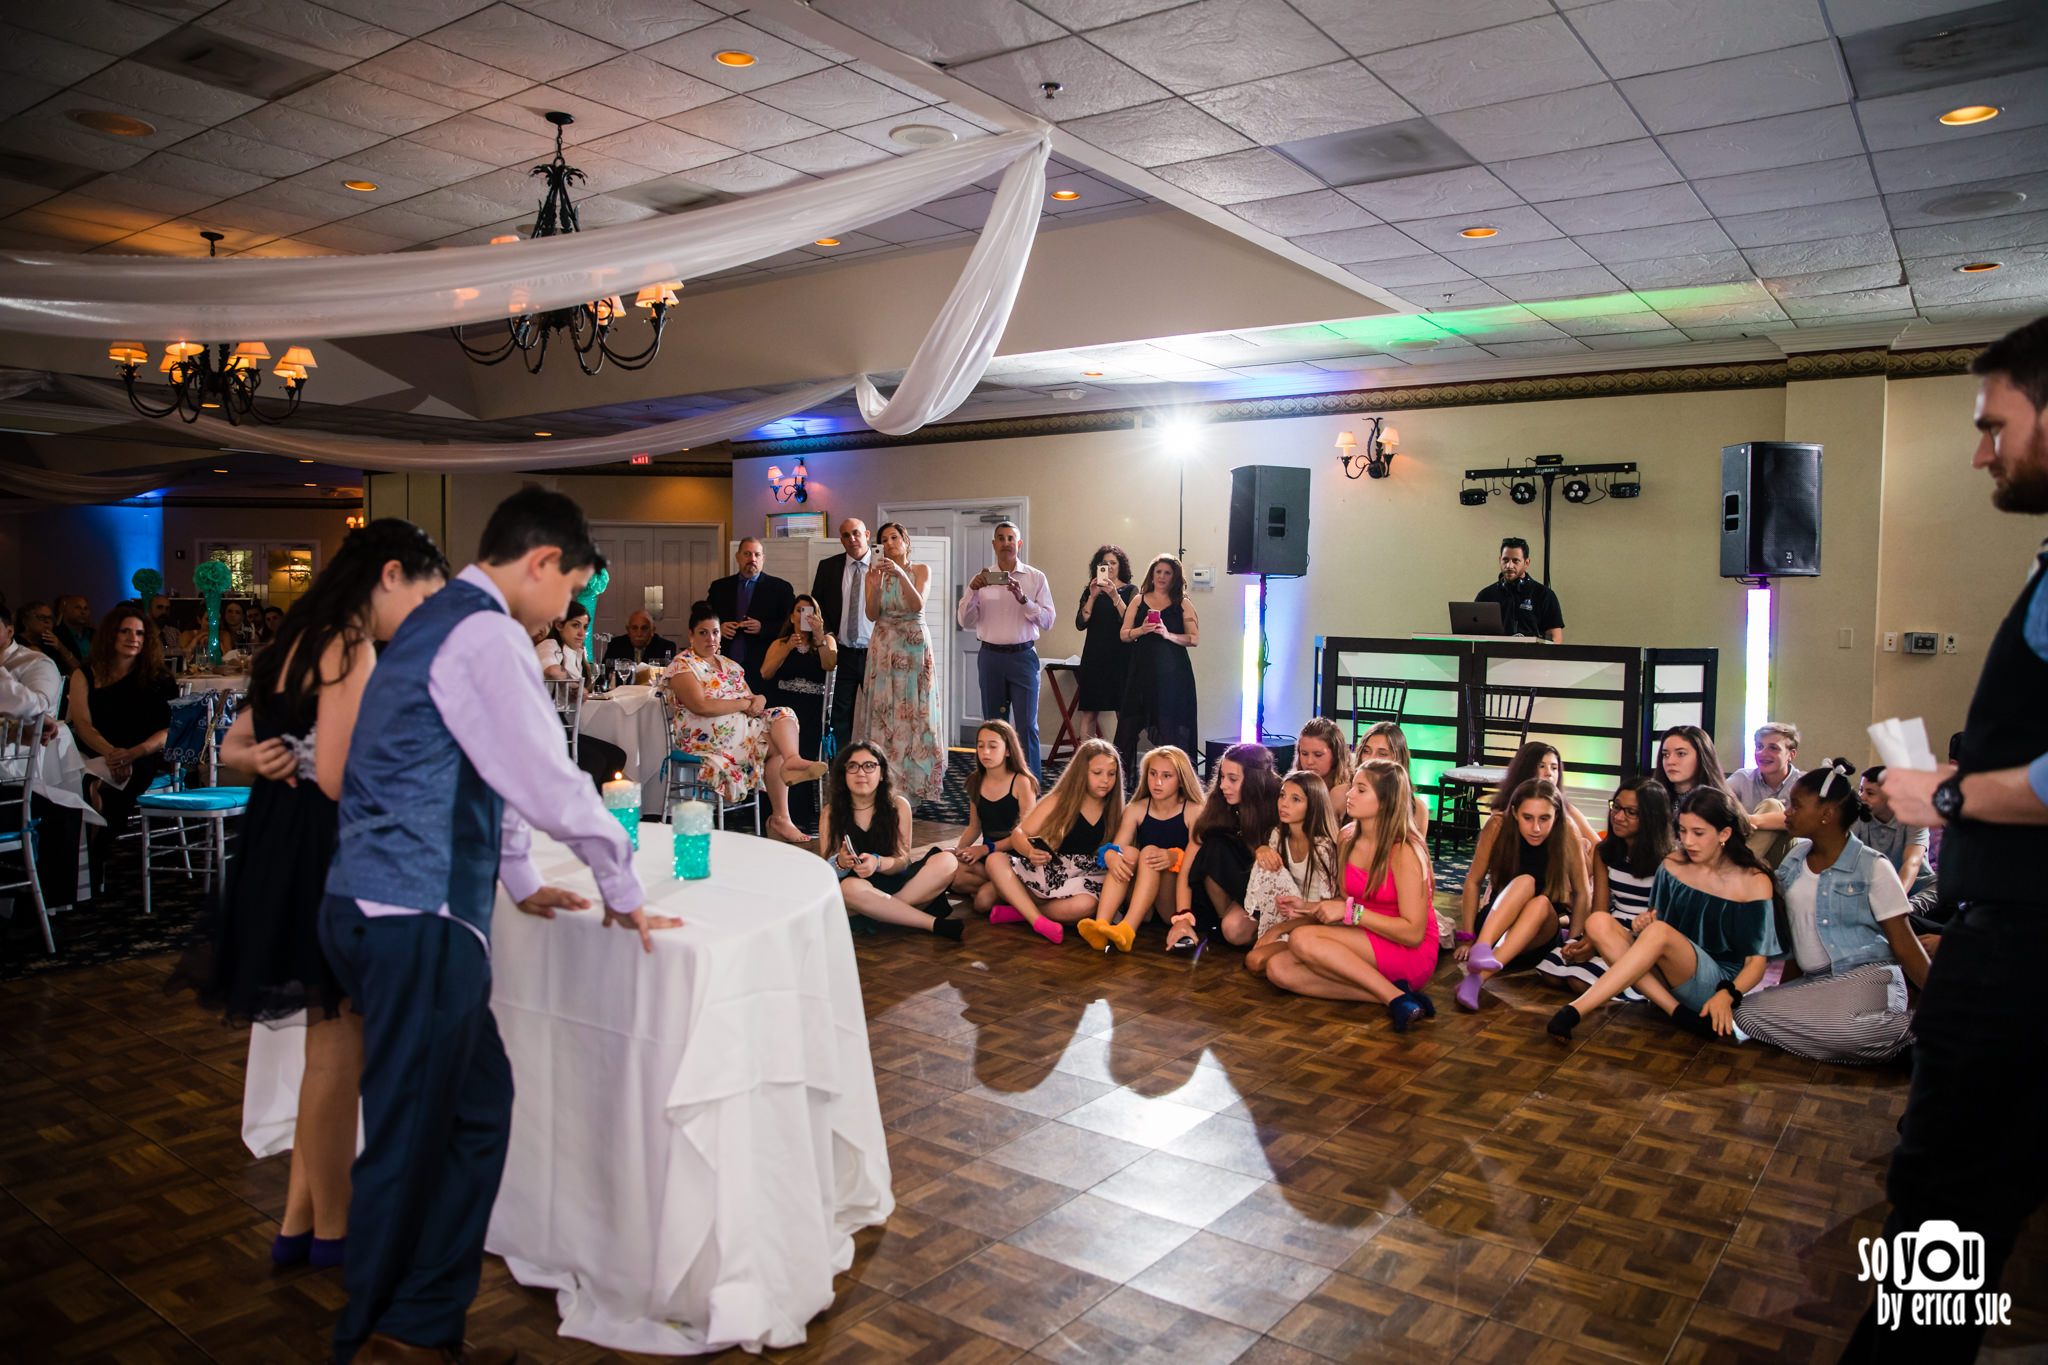 so-you-by-erica-sue-bnai-mitzvah-photographer-delray-beach-golf-club-fl-3527.jpg